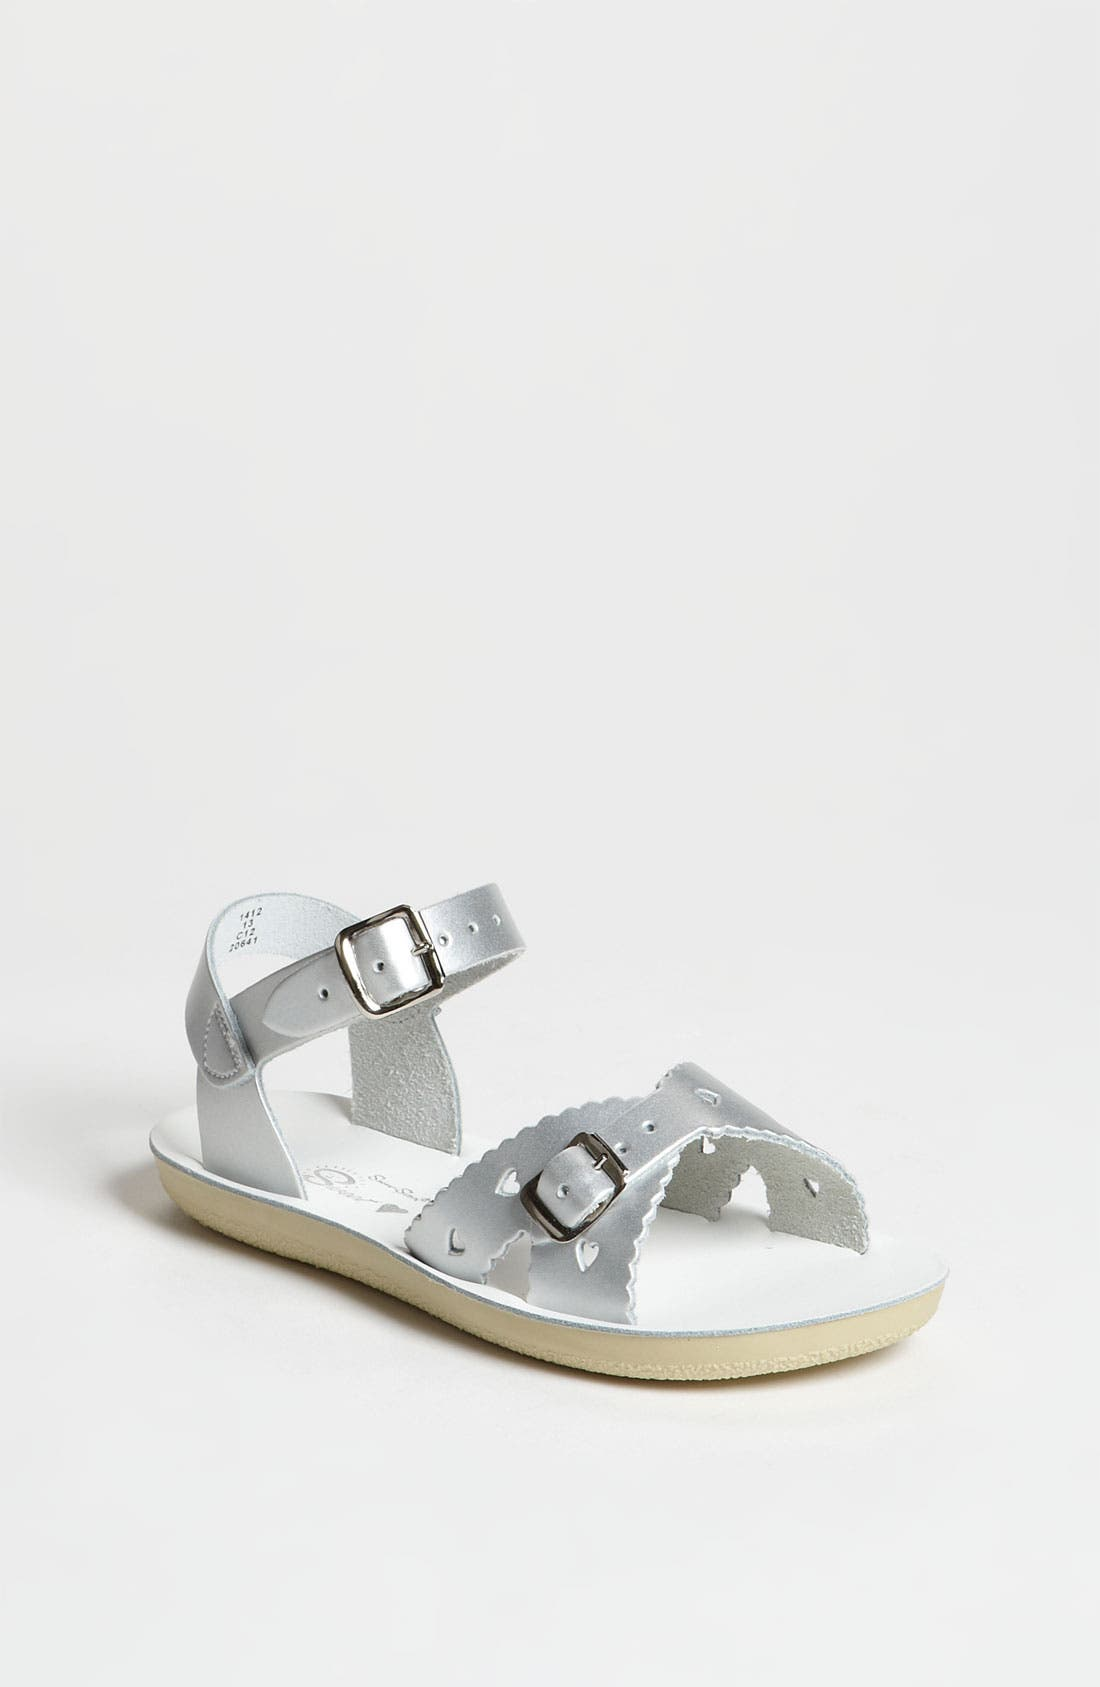 SALT WATER SANDALS BY HOY, Sweetheart Sandal, Main thumbnail 1, color, SILVER